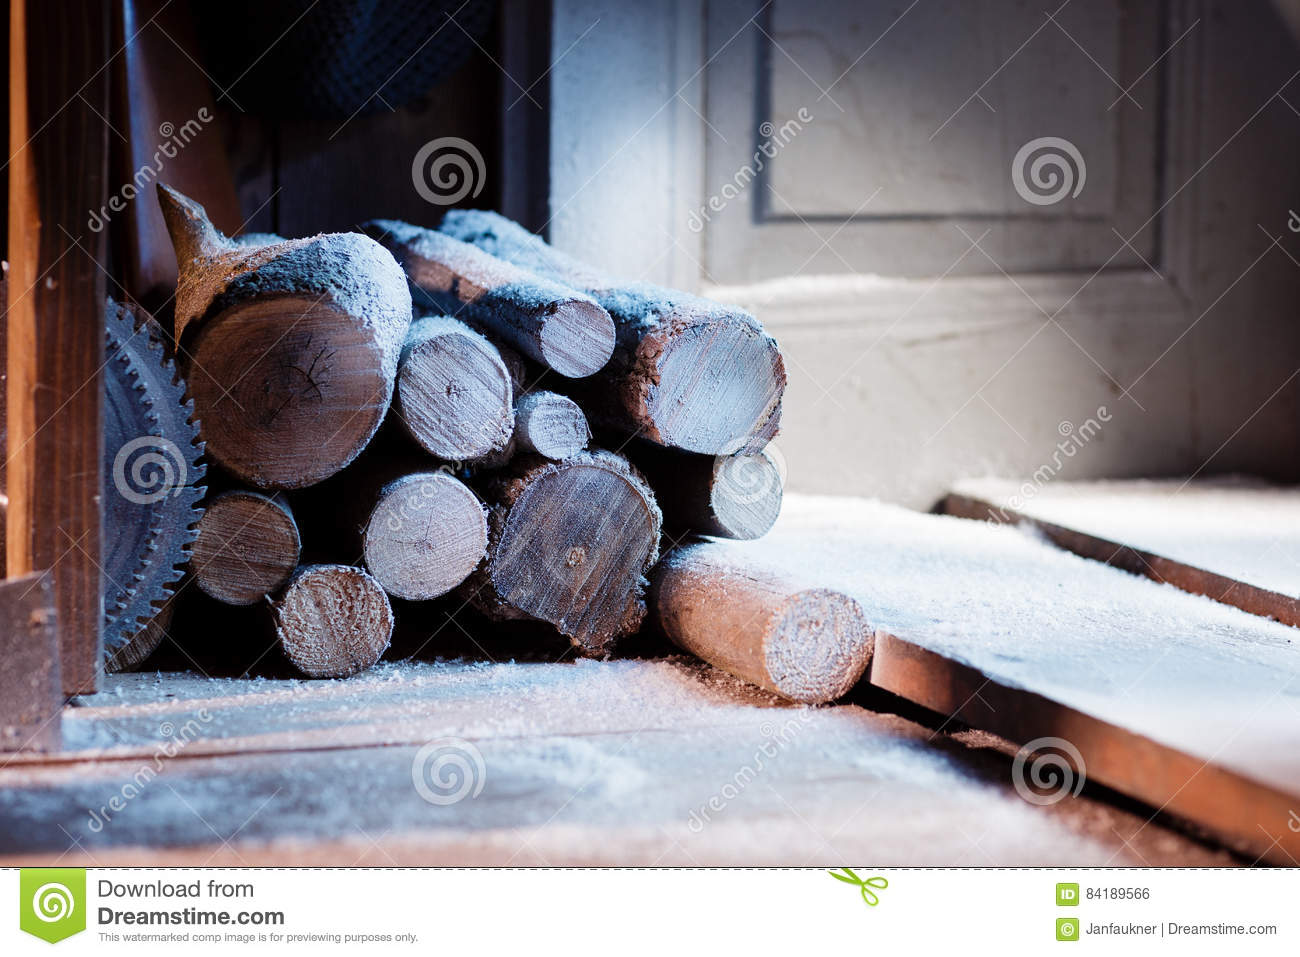 Composition of snowy pieces of wood